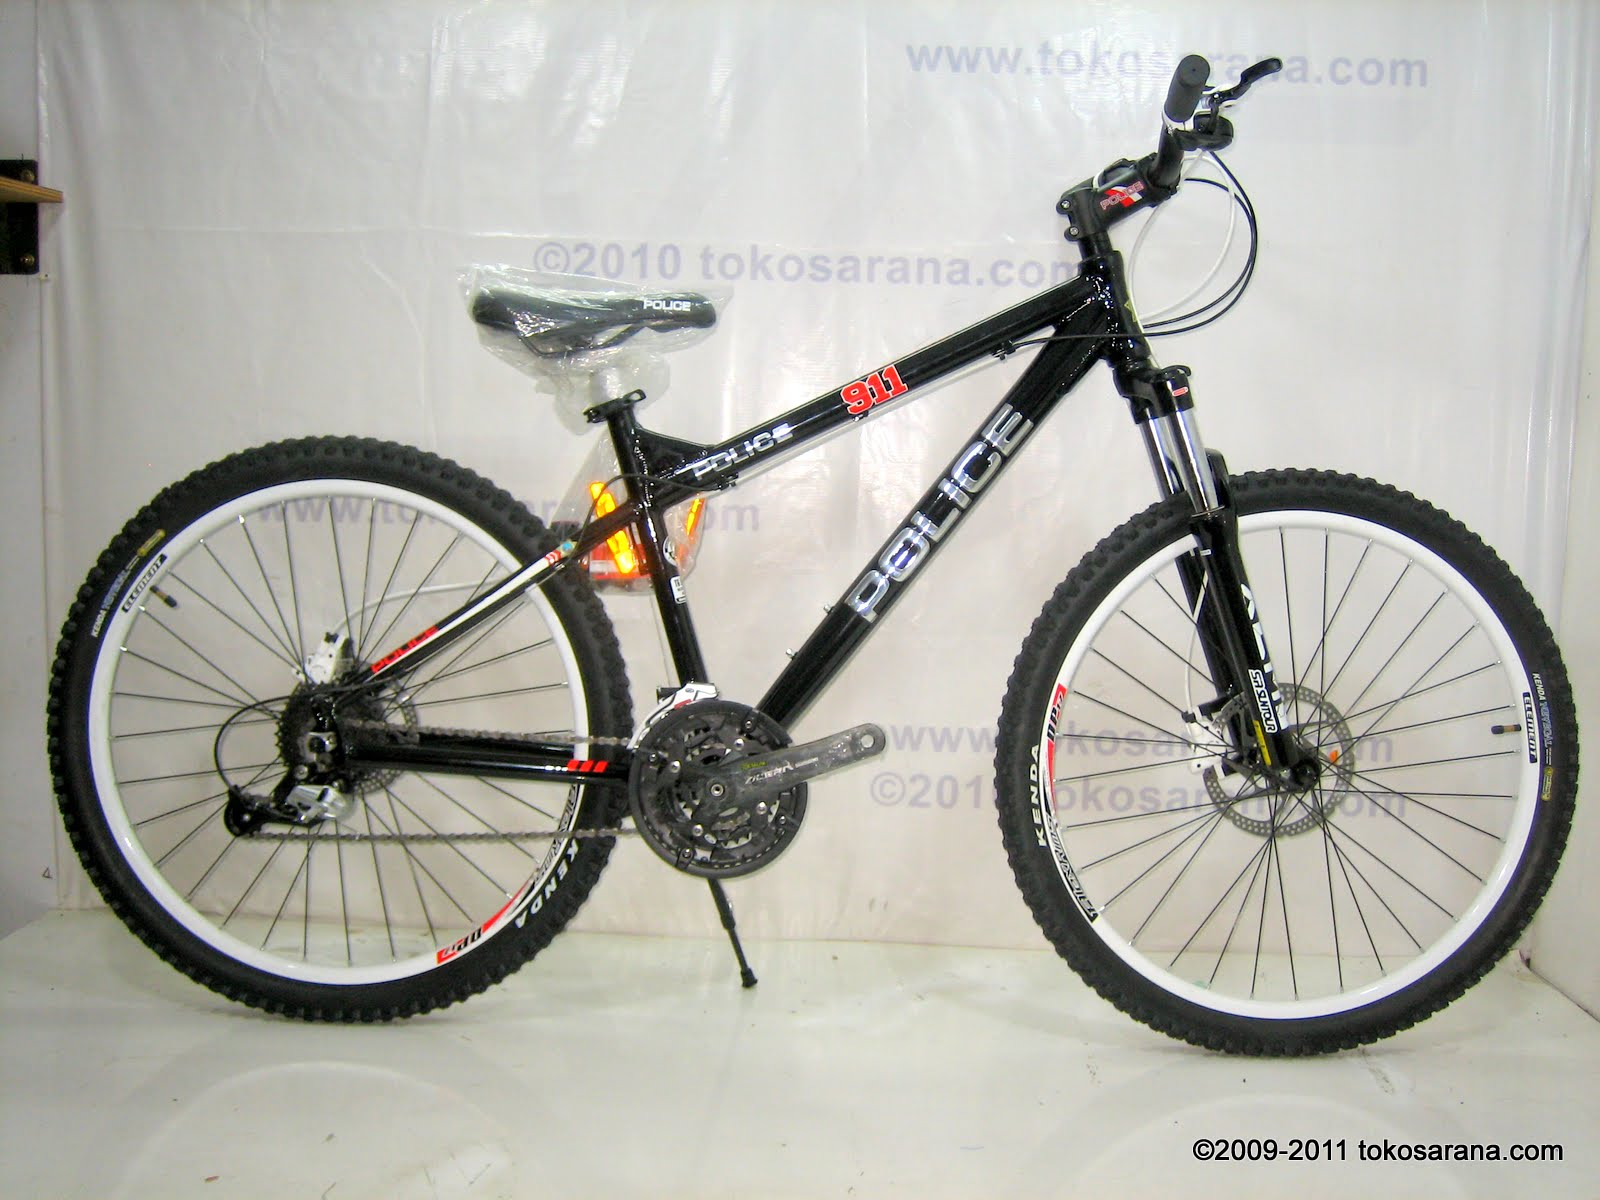 GOES BIKE: Sepeda Gunung ELEMENT POLICE 911 CALIFORNIA 26 Inci